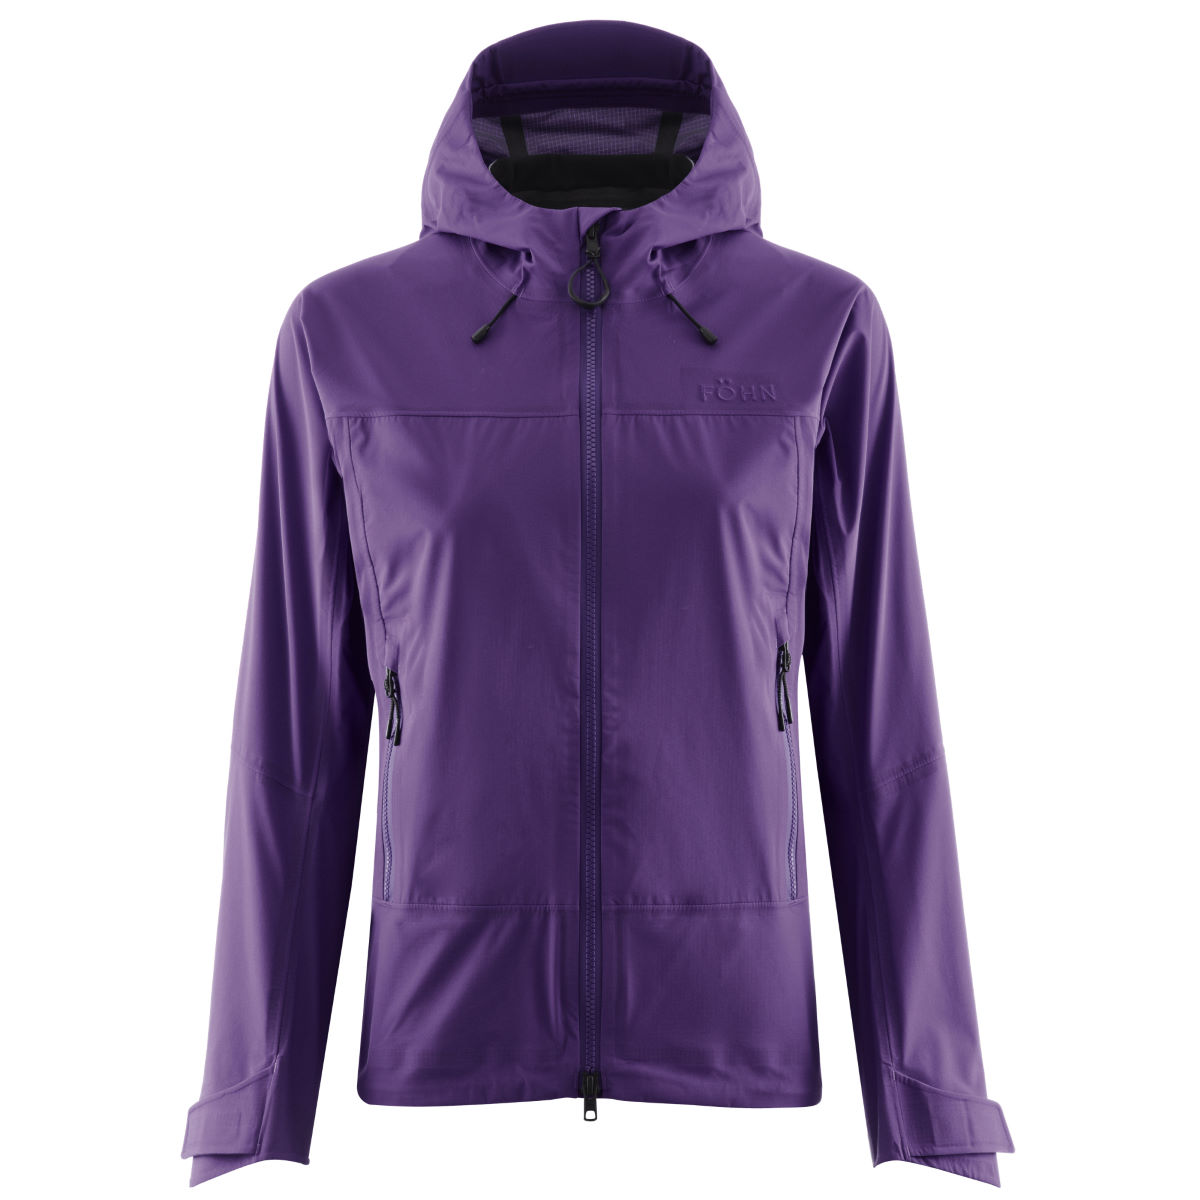 Fohn Fohn Womens Supercell 3L Waterproof Jacket   Jackets